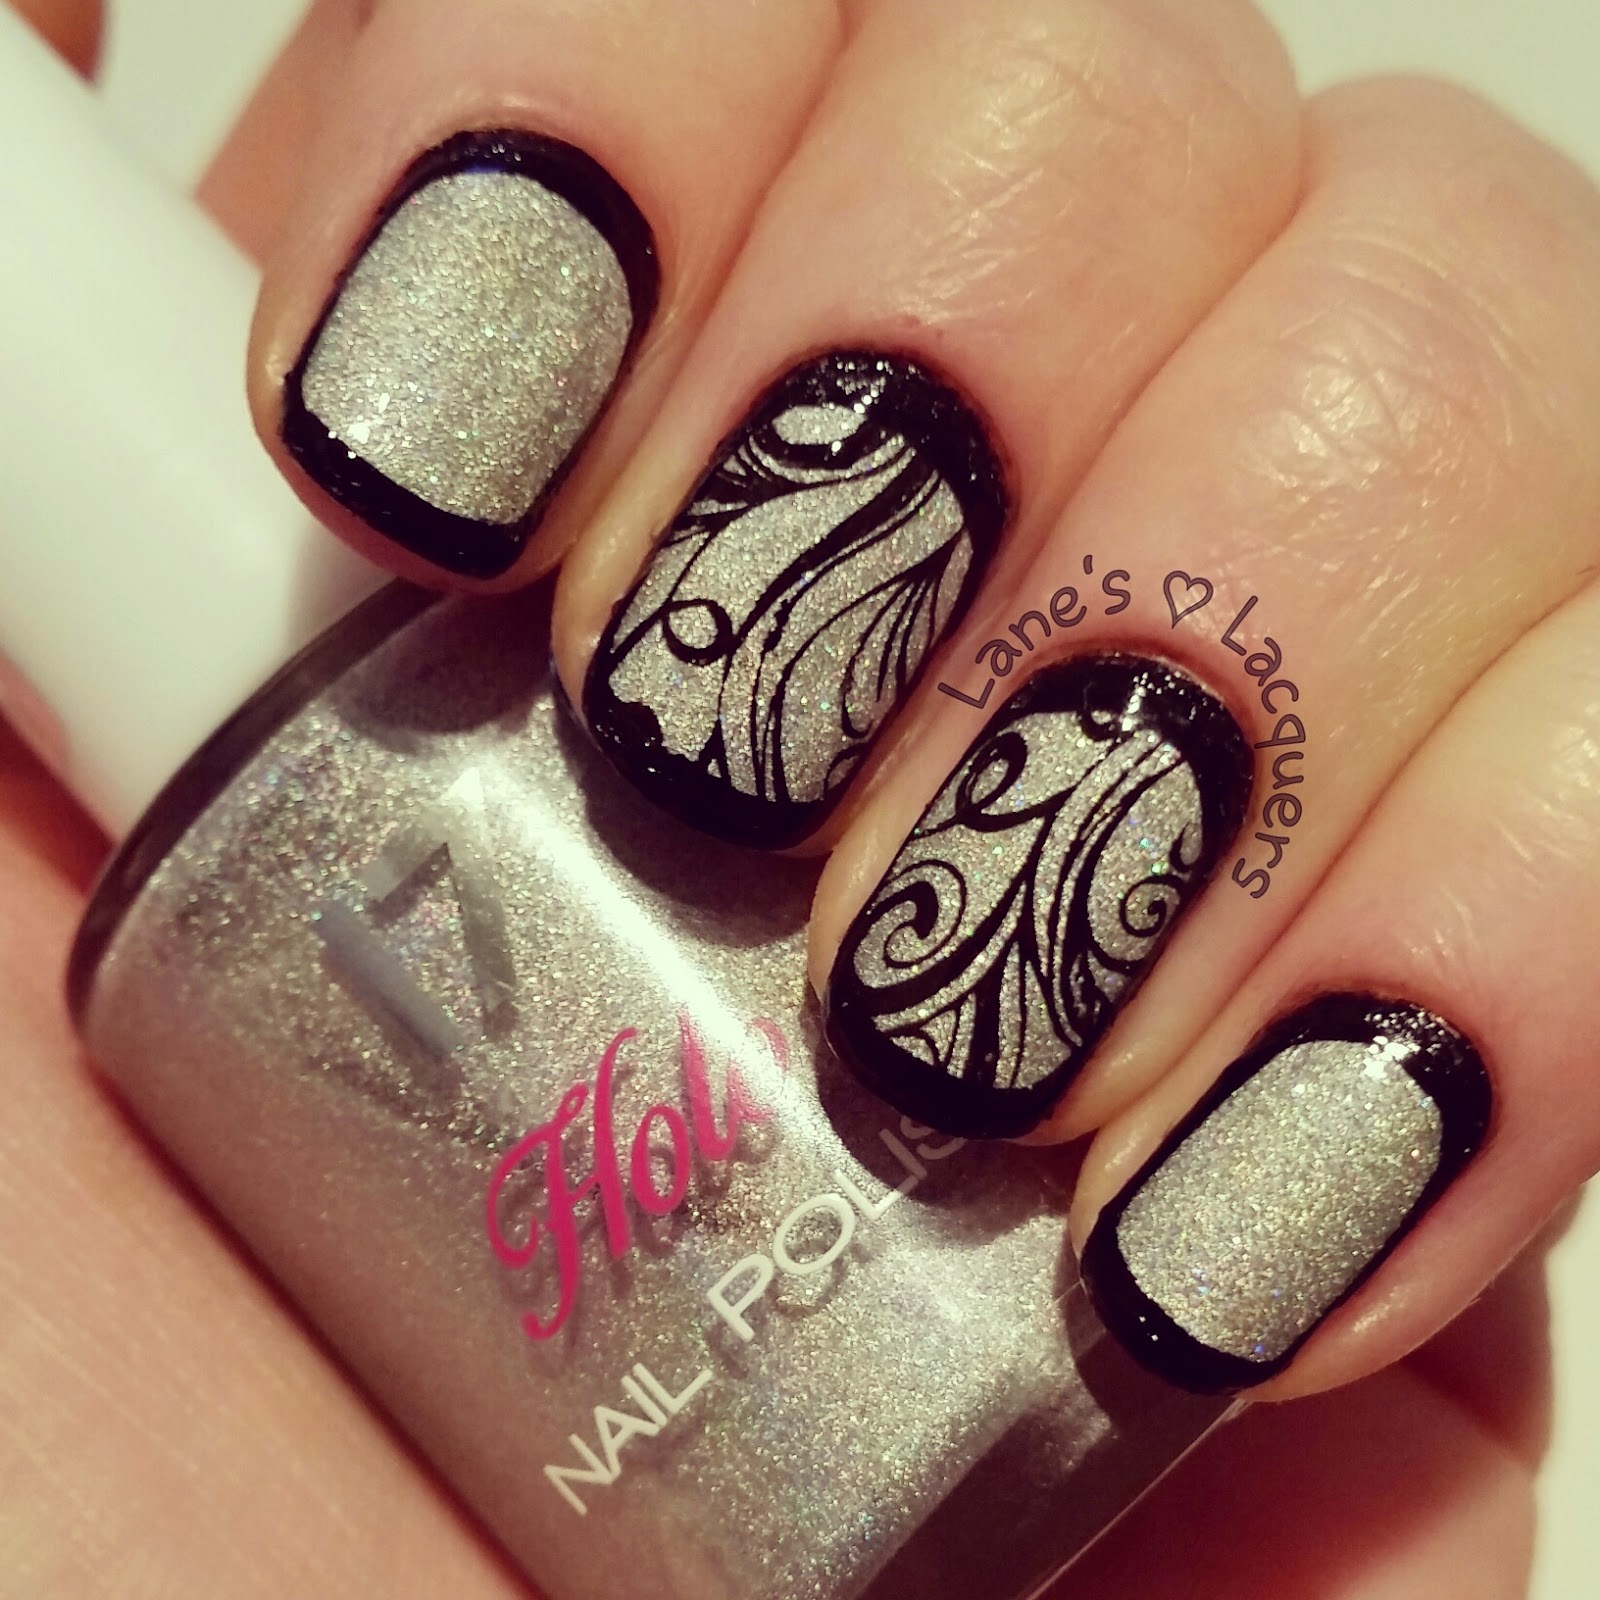 boots-17-silver-holo-black-edged-stamped-nail-art (2)